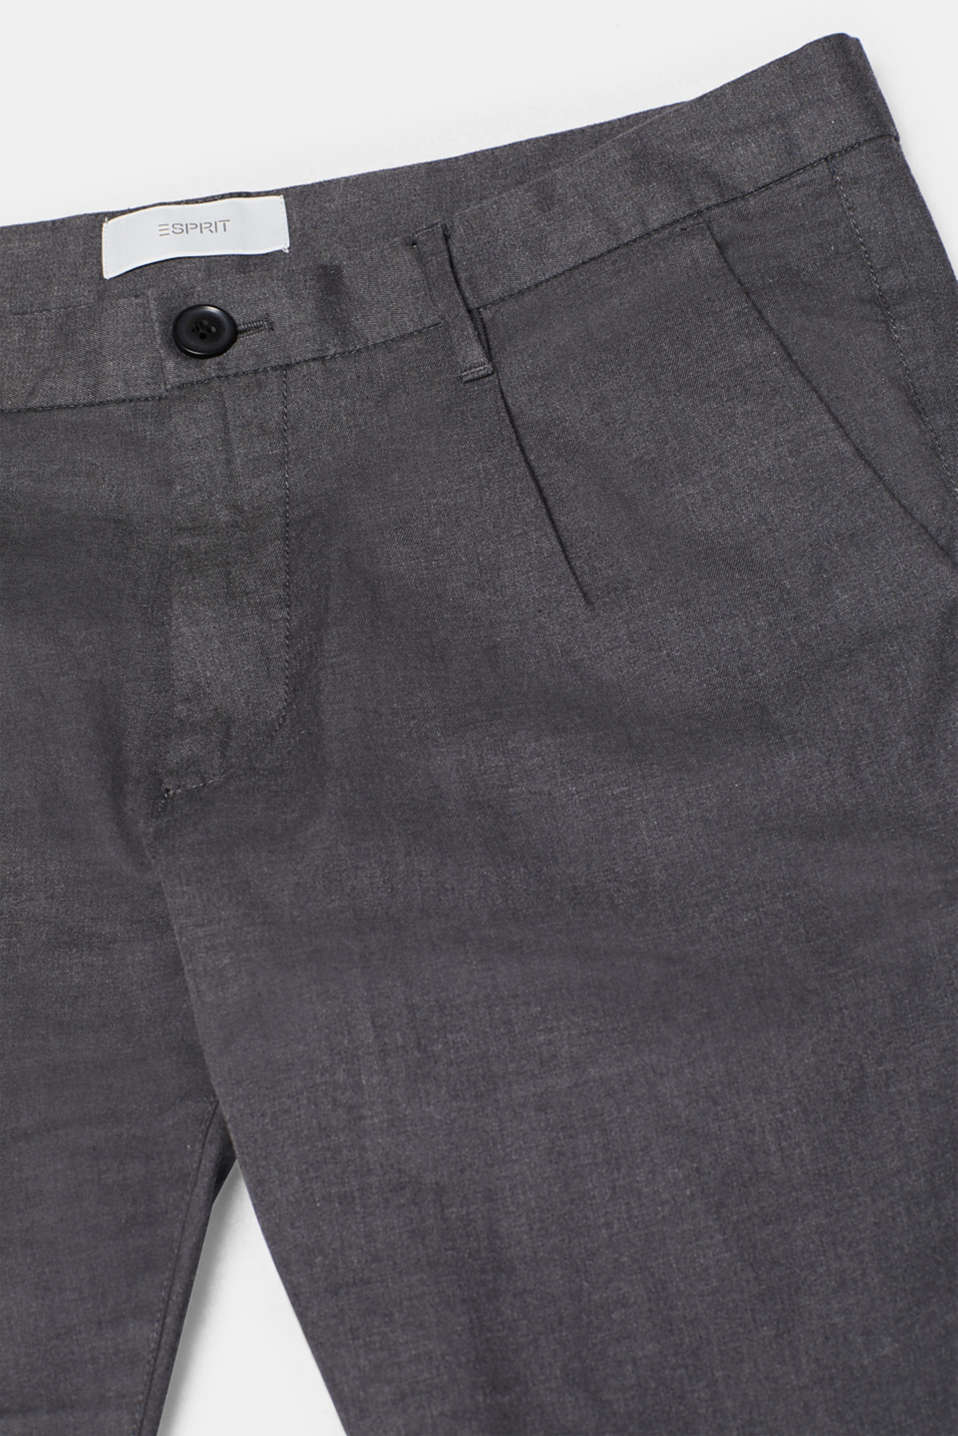 Pants woven Slim fit, ANTHRACITE, detail image number 3